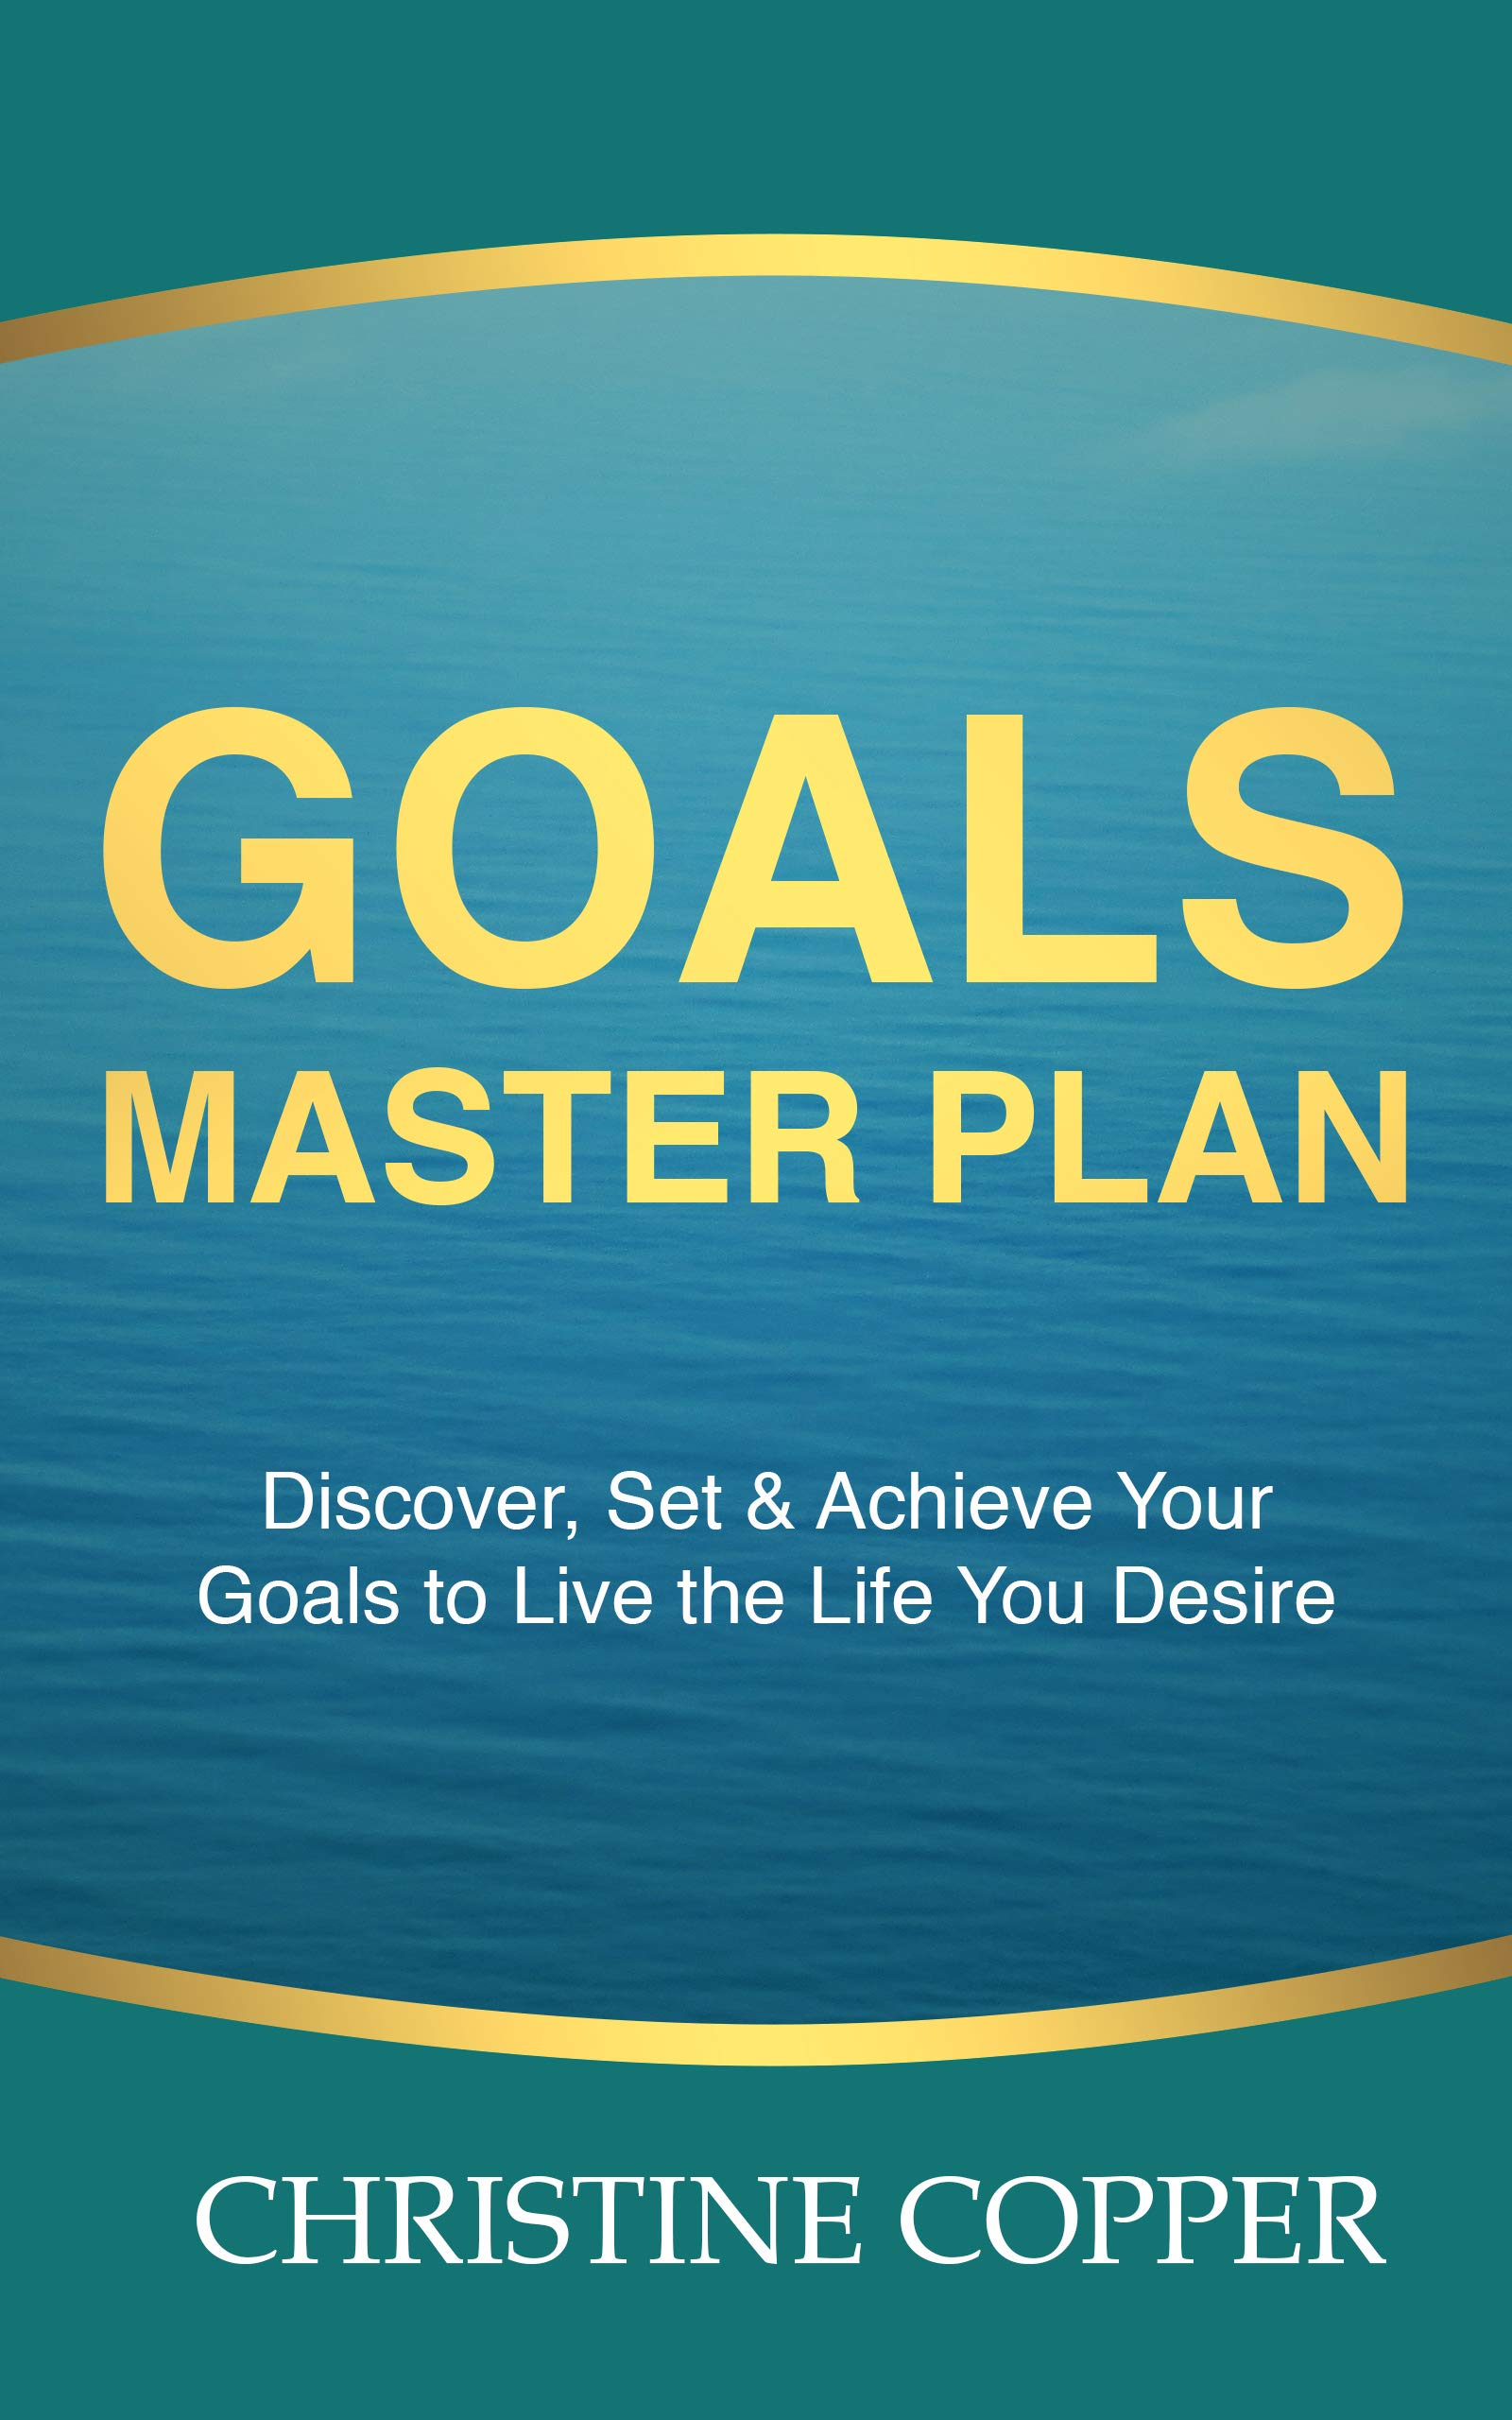 Goals Master Plan: Discover, Set & Achieve Your Goals to Live the Life You Desire